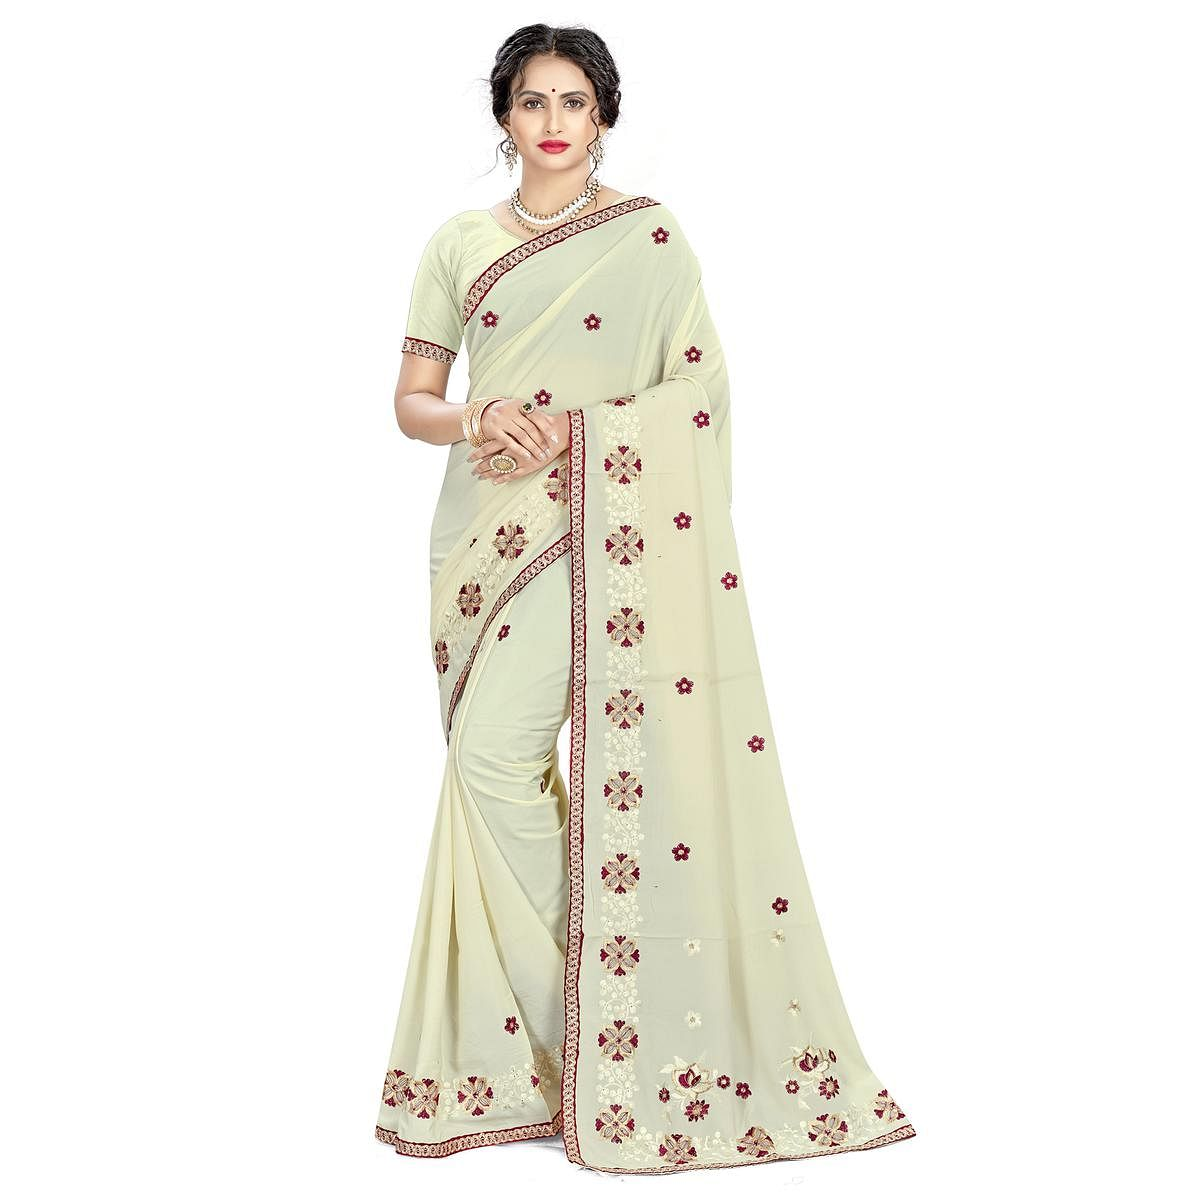 Entrancing Cream Colored Casual Wear Embroidered Crepe Saree